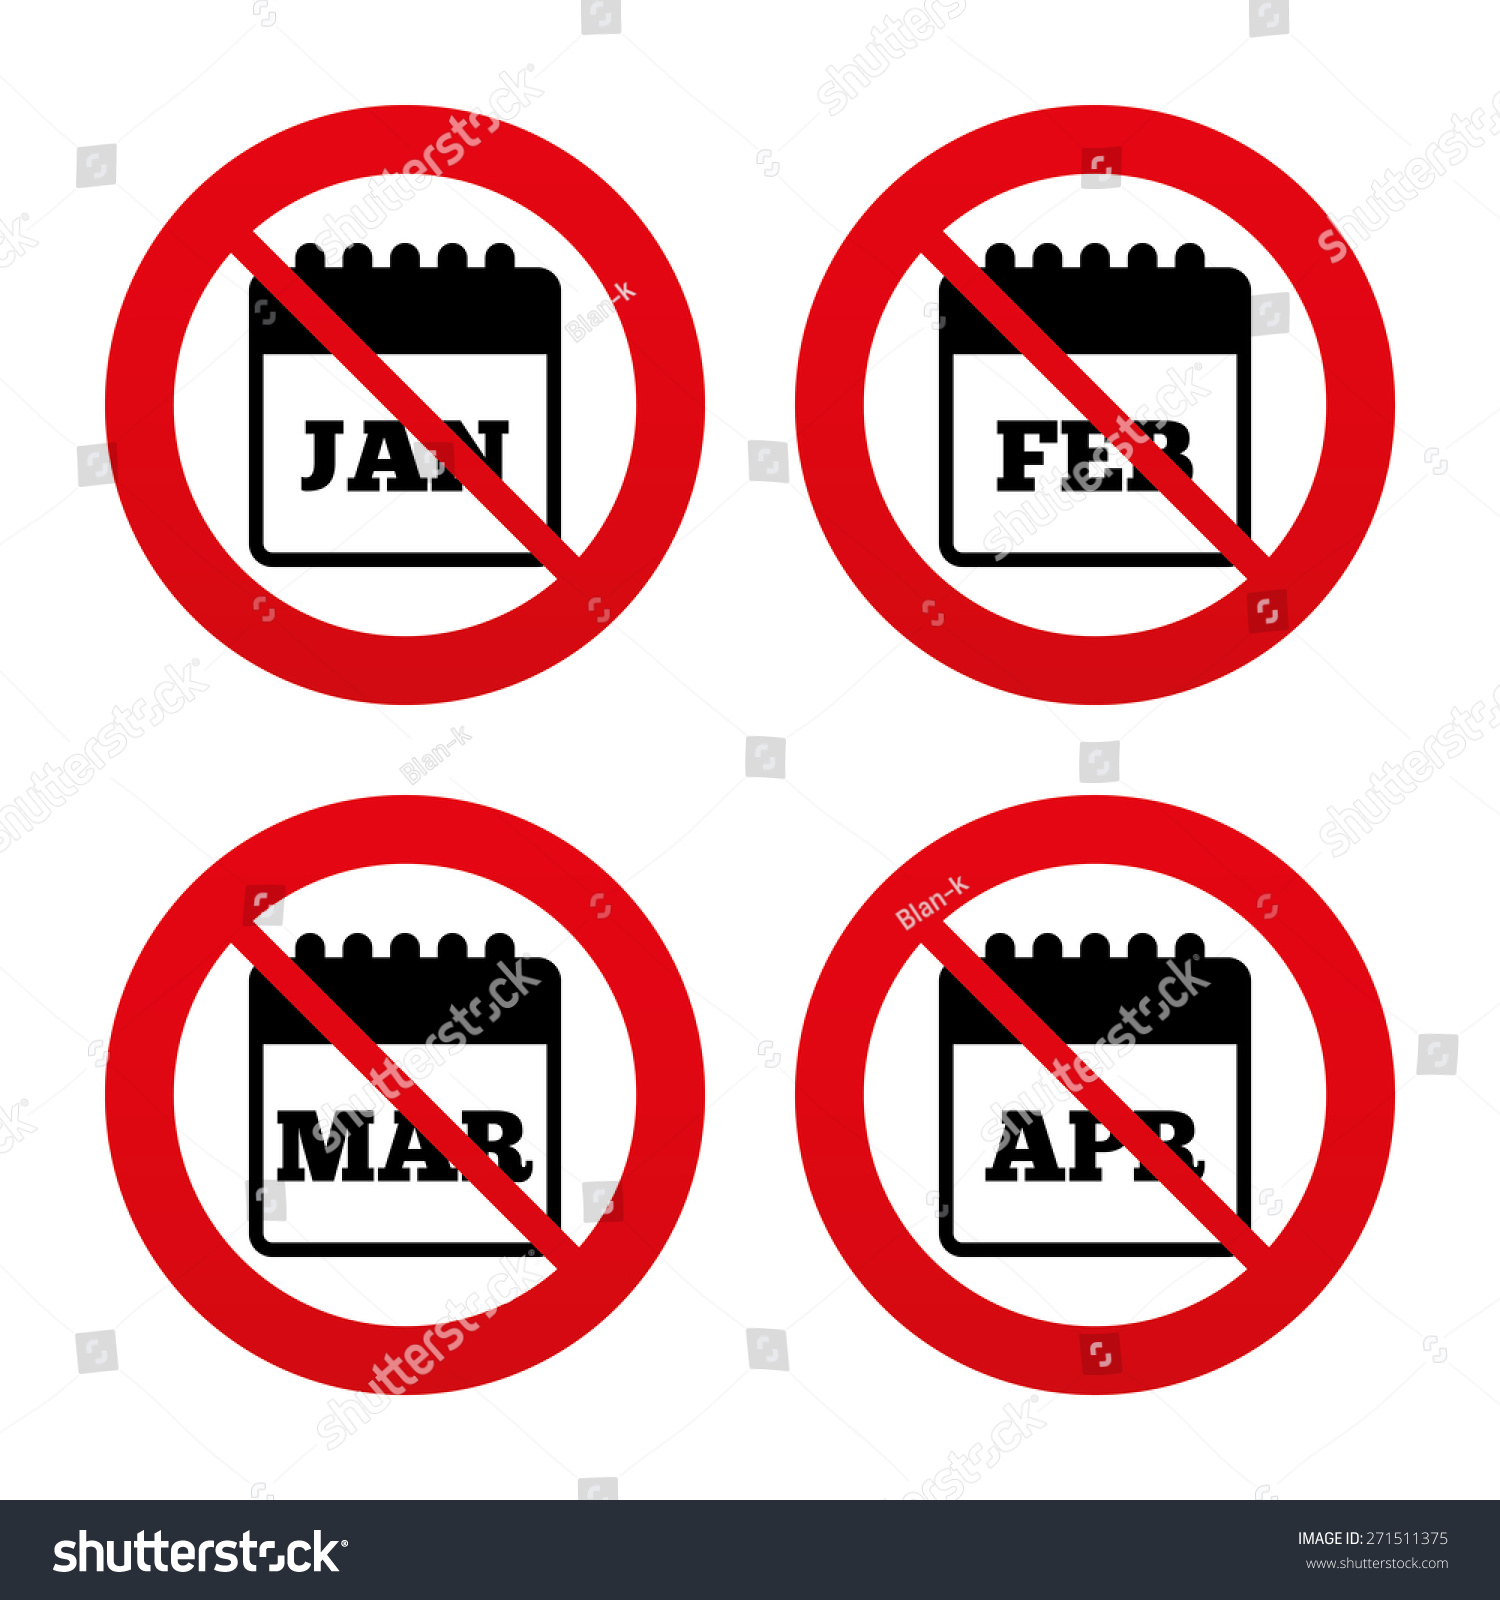 Month signs and symbols image collections symbol and sign ideas no ban stop signs calendar icons stock vector 271511375 shutterstock no ban or stop signs calendar buycottarizona